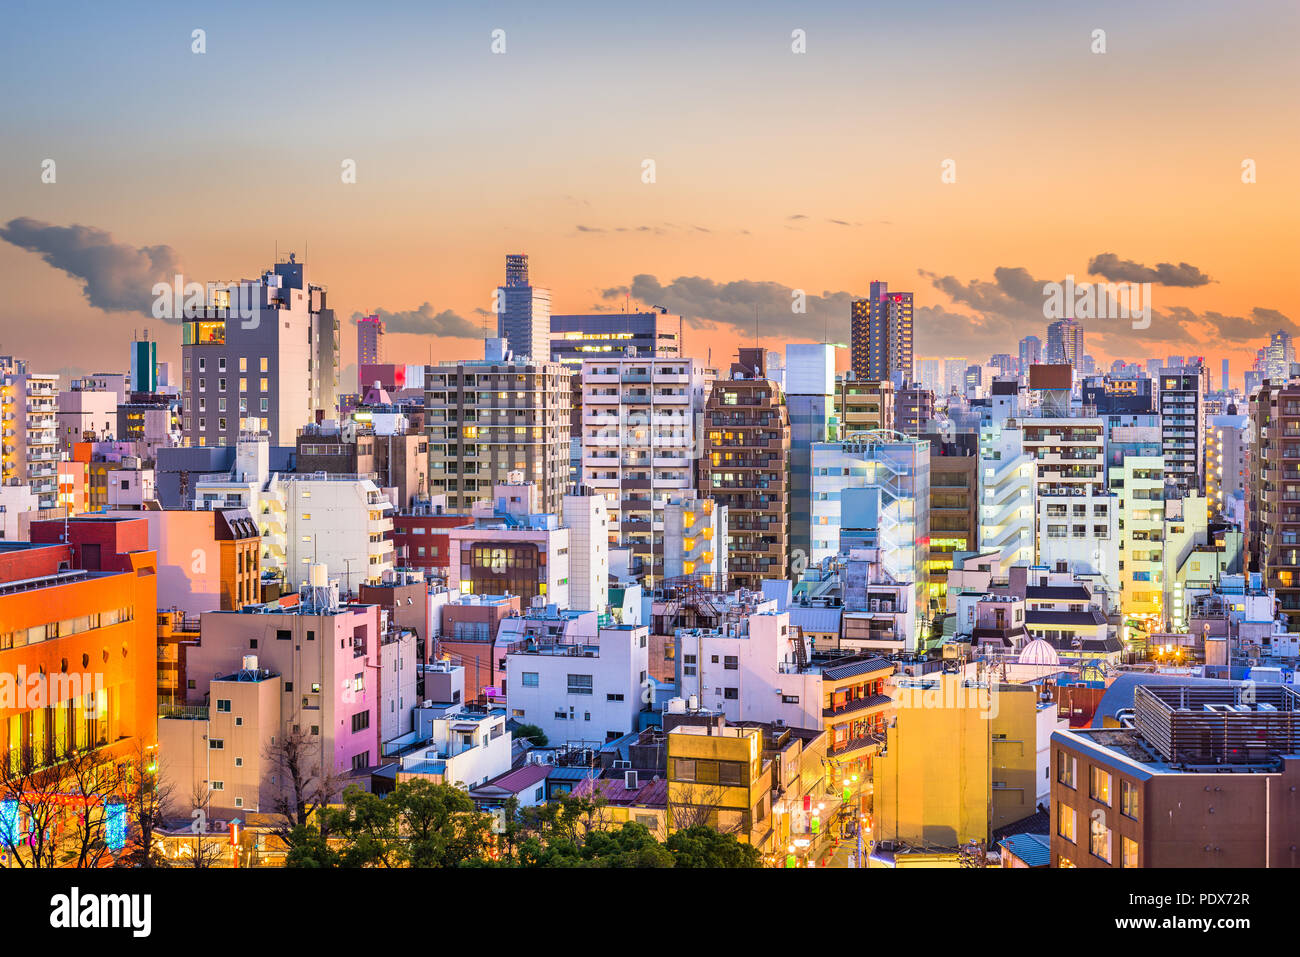 Tokyo, Japan apartment buildings and cityscape in  Sumida Ward at dusk. - Stock Image